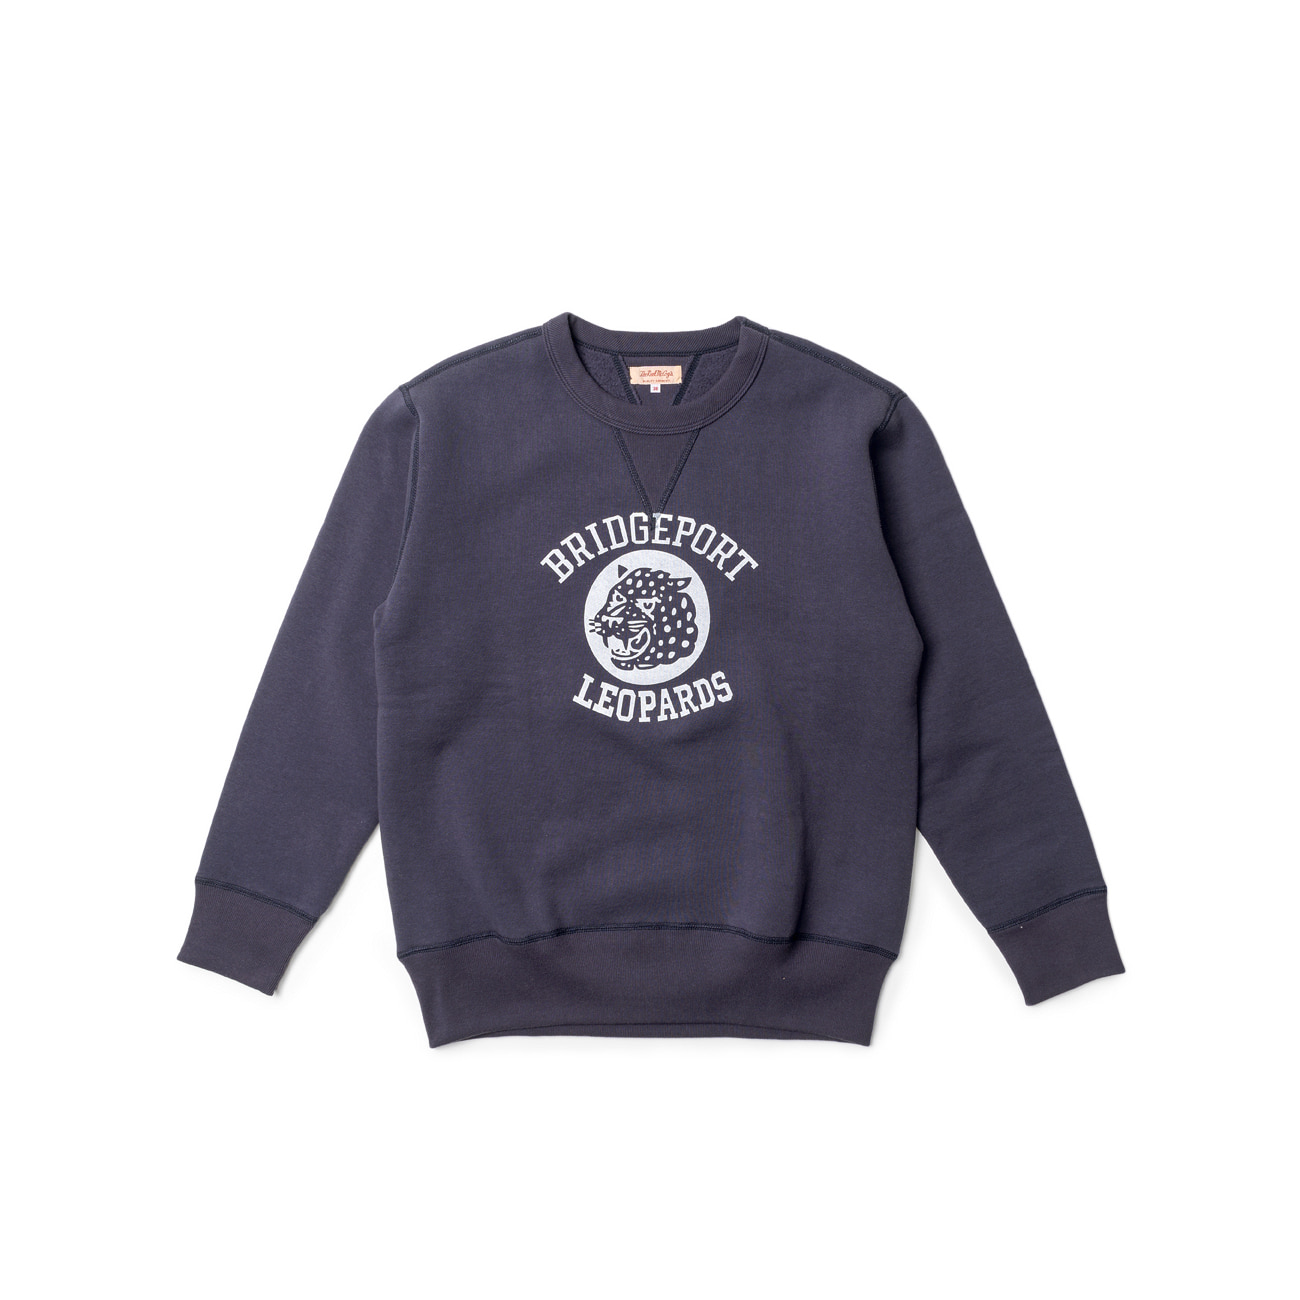 Loop Wheel Sweatshirt / Leopards